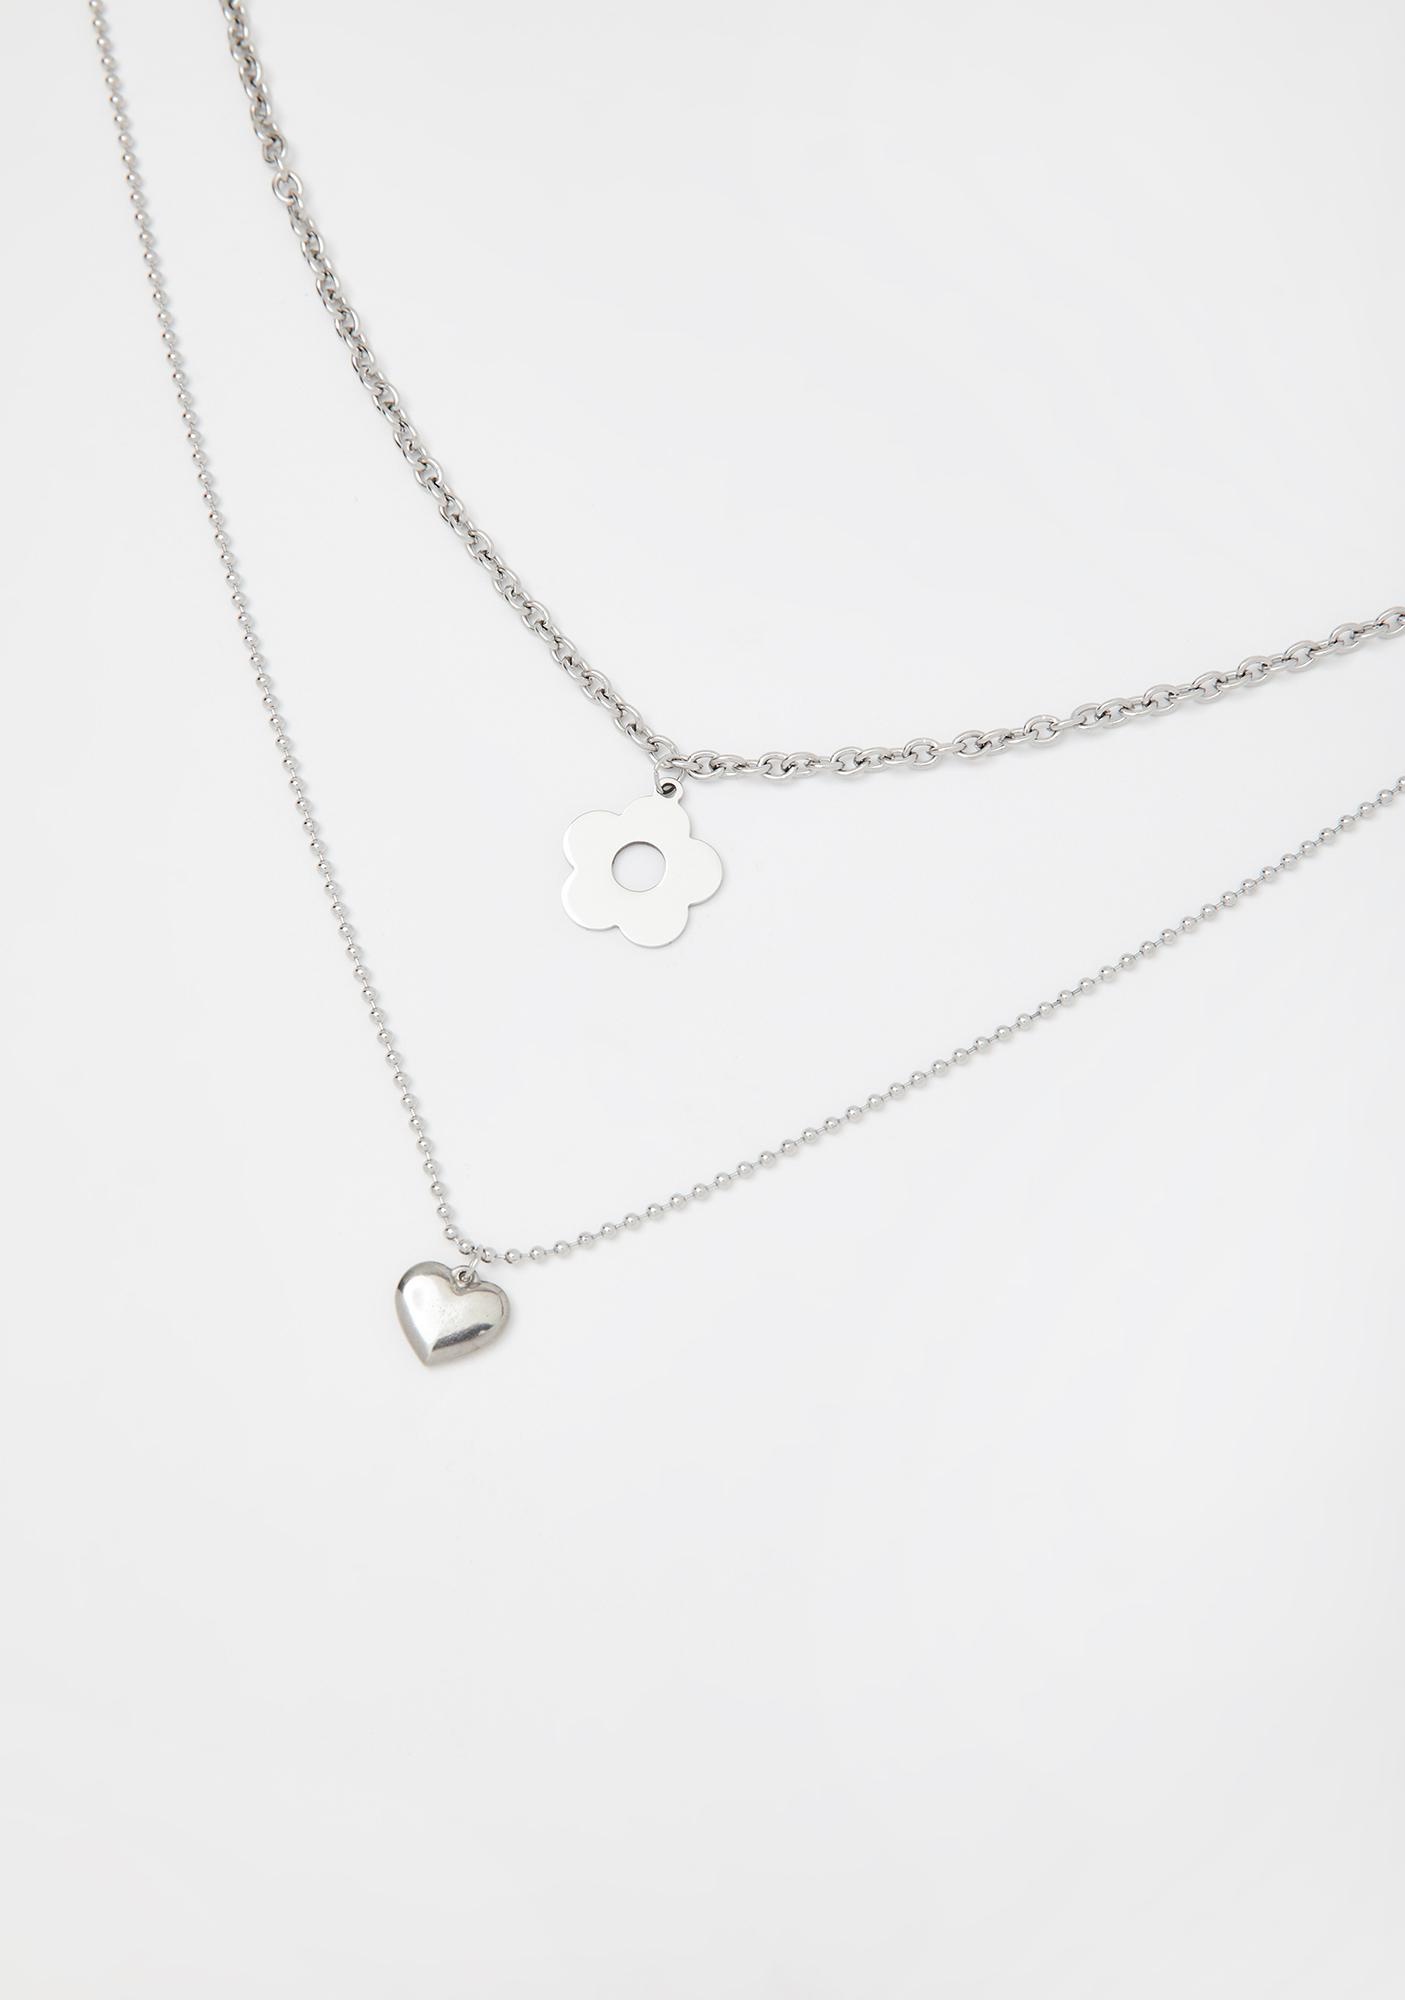 Sweeter Than Ever Necklace Set